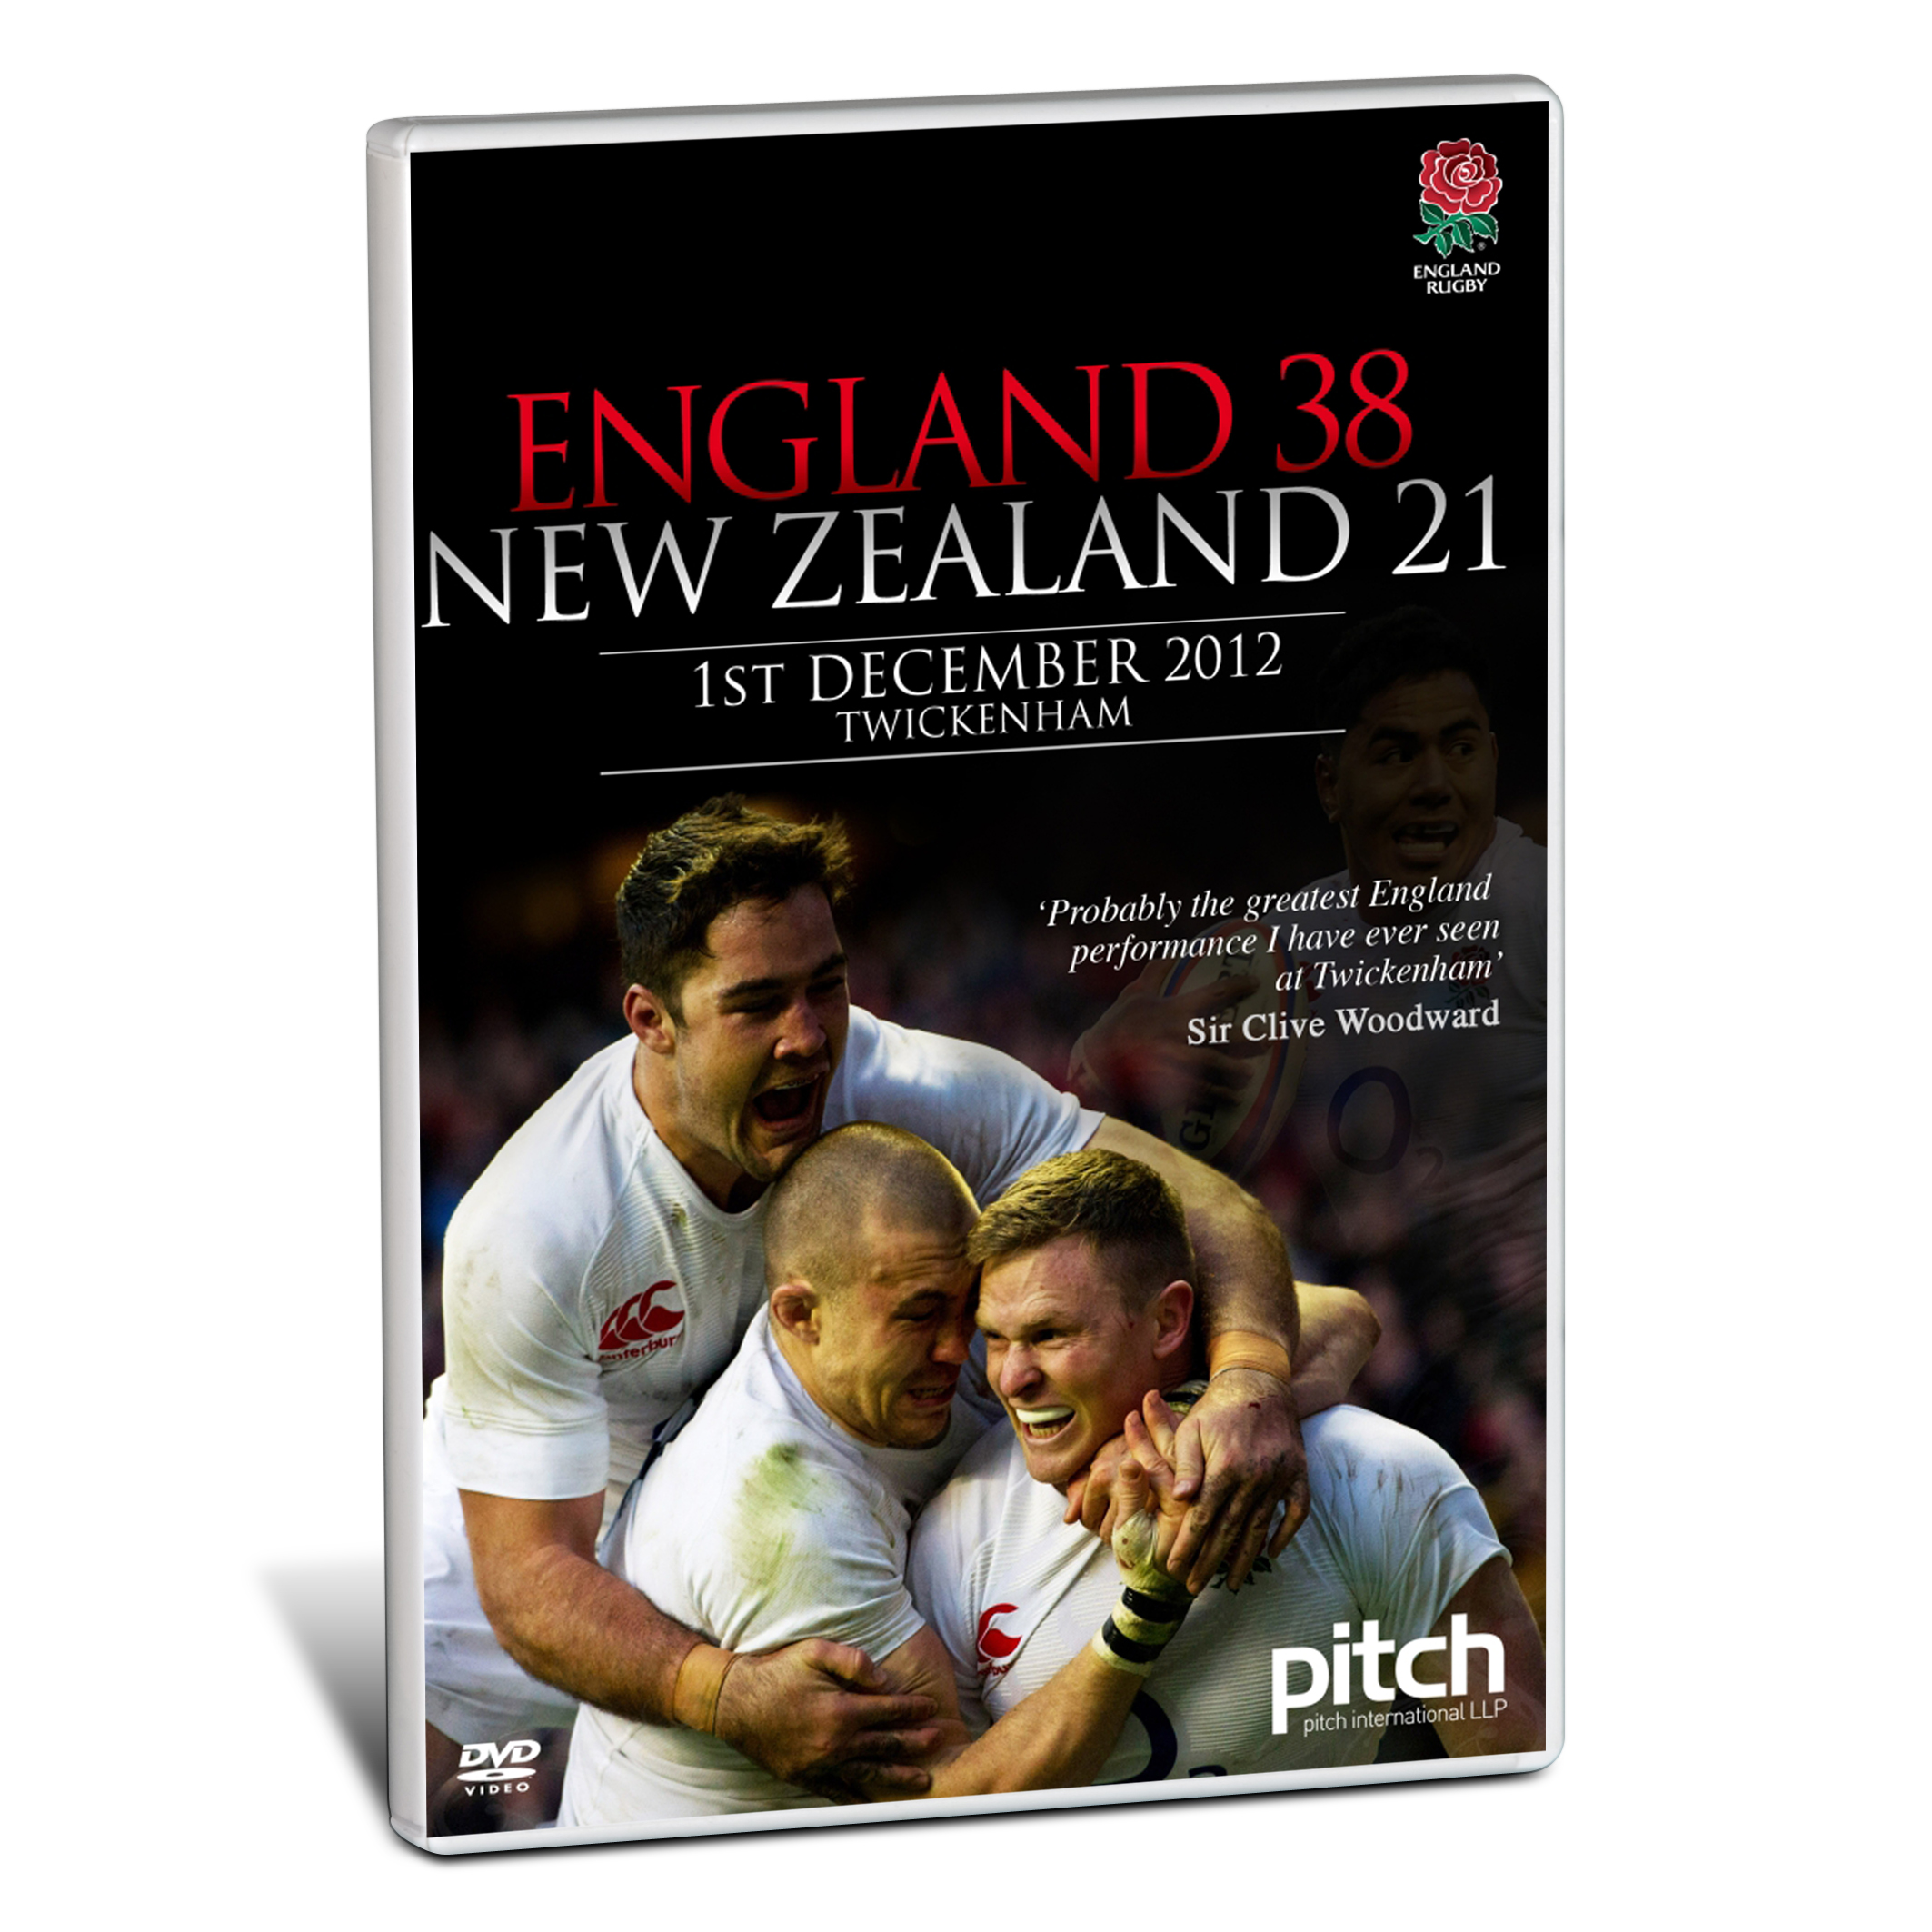 England Rugby England 38 New Zealand 21 DVD